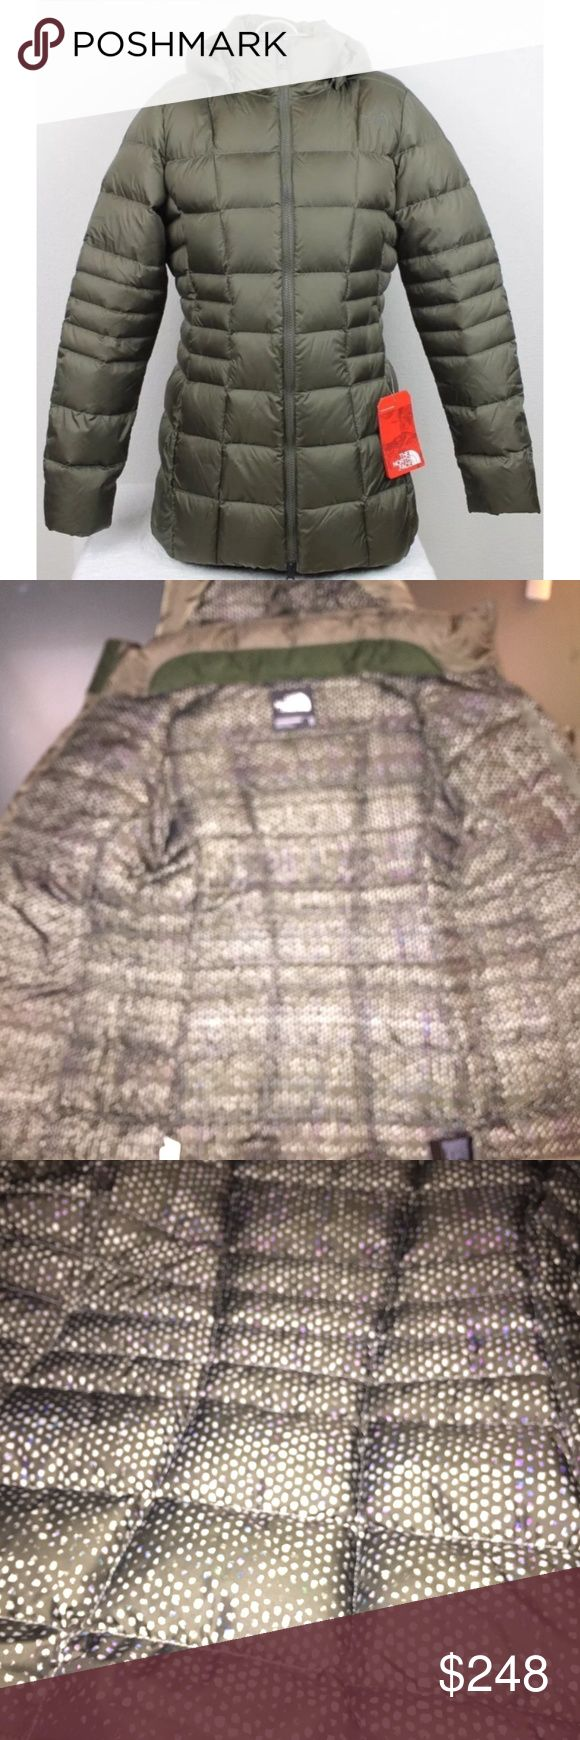 RARE NWT North Face Transit II Jacket Olive Green I purchased this item from a North Face store but it's too small and there's not a store nearby to return it. THIS JACKET IS EXTREMELY RARE! It was the LAST ONE in olive green and I haven't been able to find it anywhere else!  It's brand new with tags, not from an outlet  Looks brown in photos but it is defintely olive green!  I REPEAT.. RETAILS AT $249 plus tax  This is the 2017 version with 550 DOWN FILL and a removable hood!  ACCEPTING…